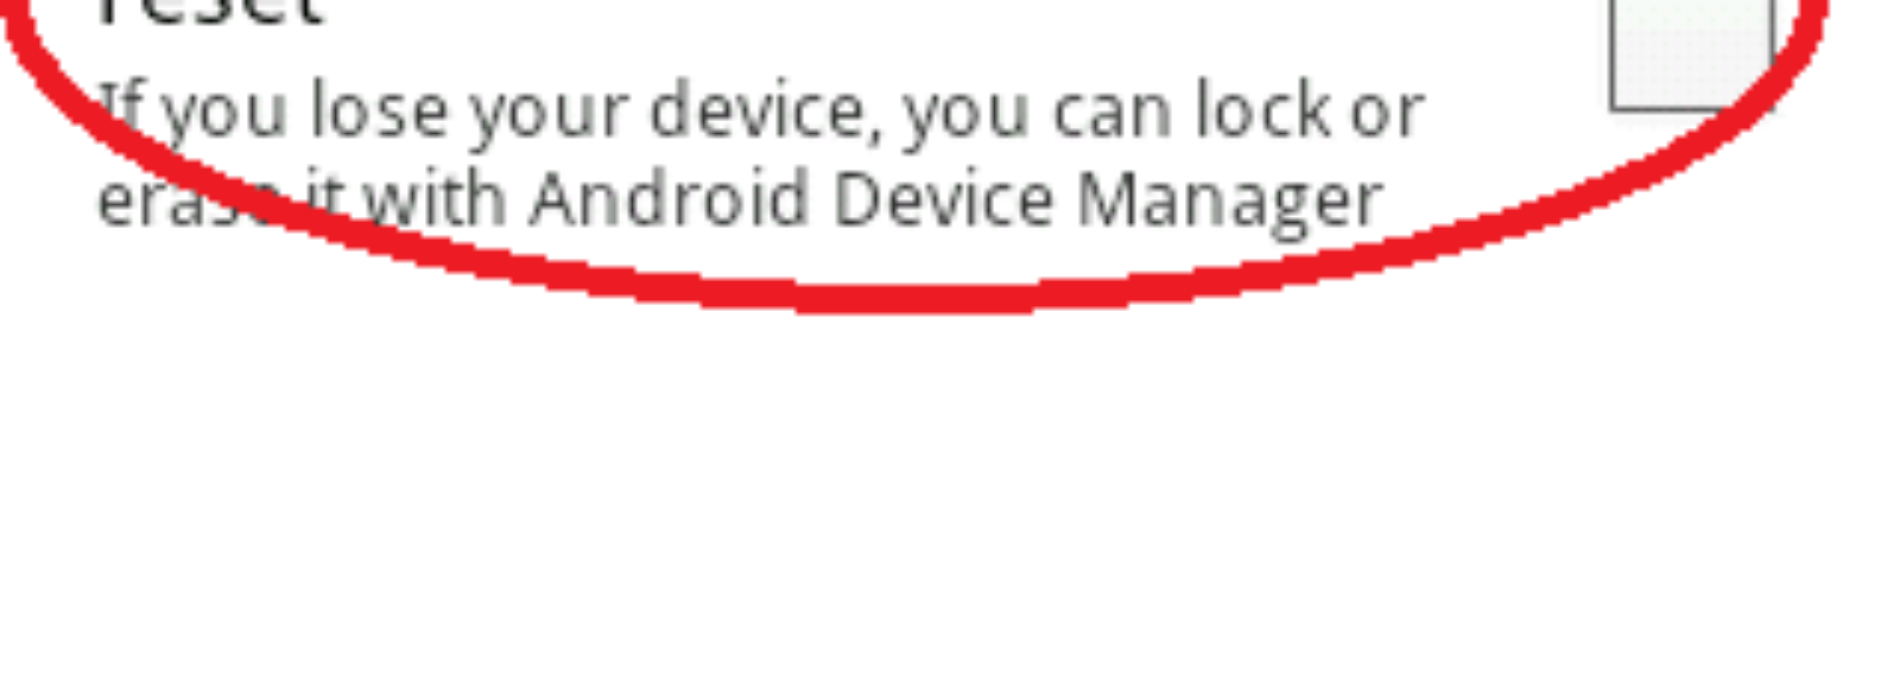 How to secure your android device and save your data with Android Device Manager when you lost your Android device